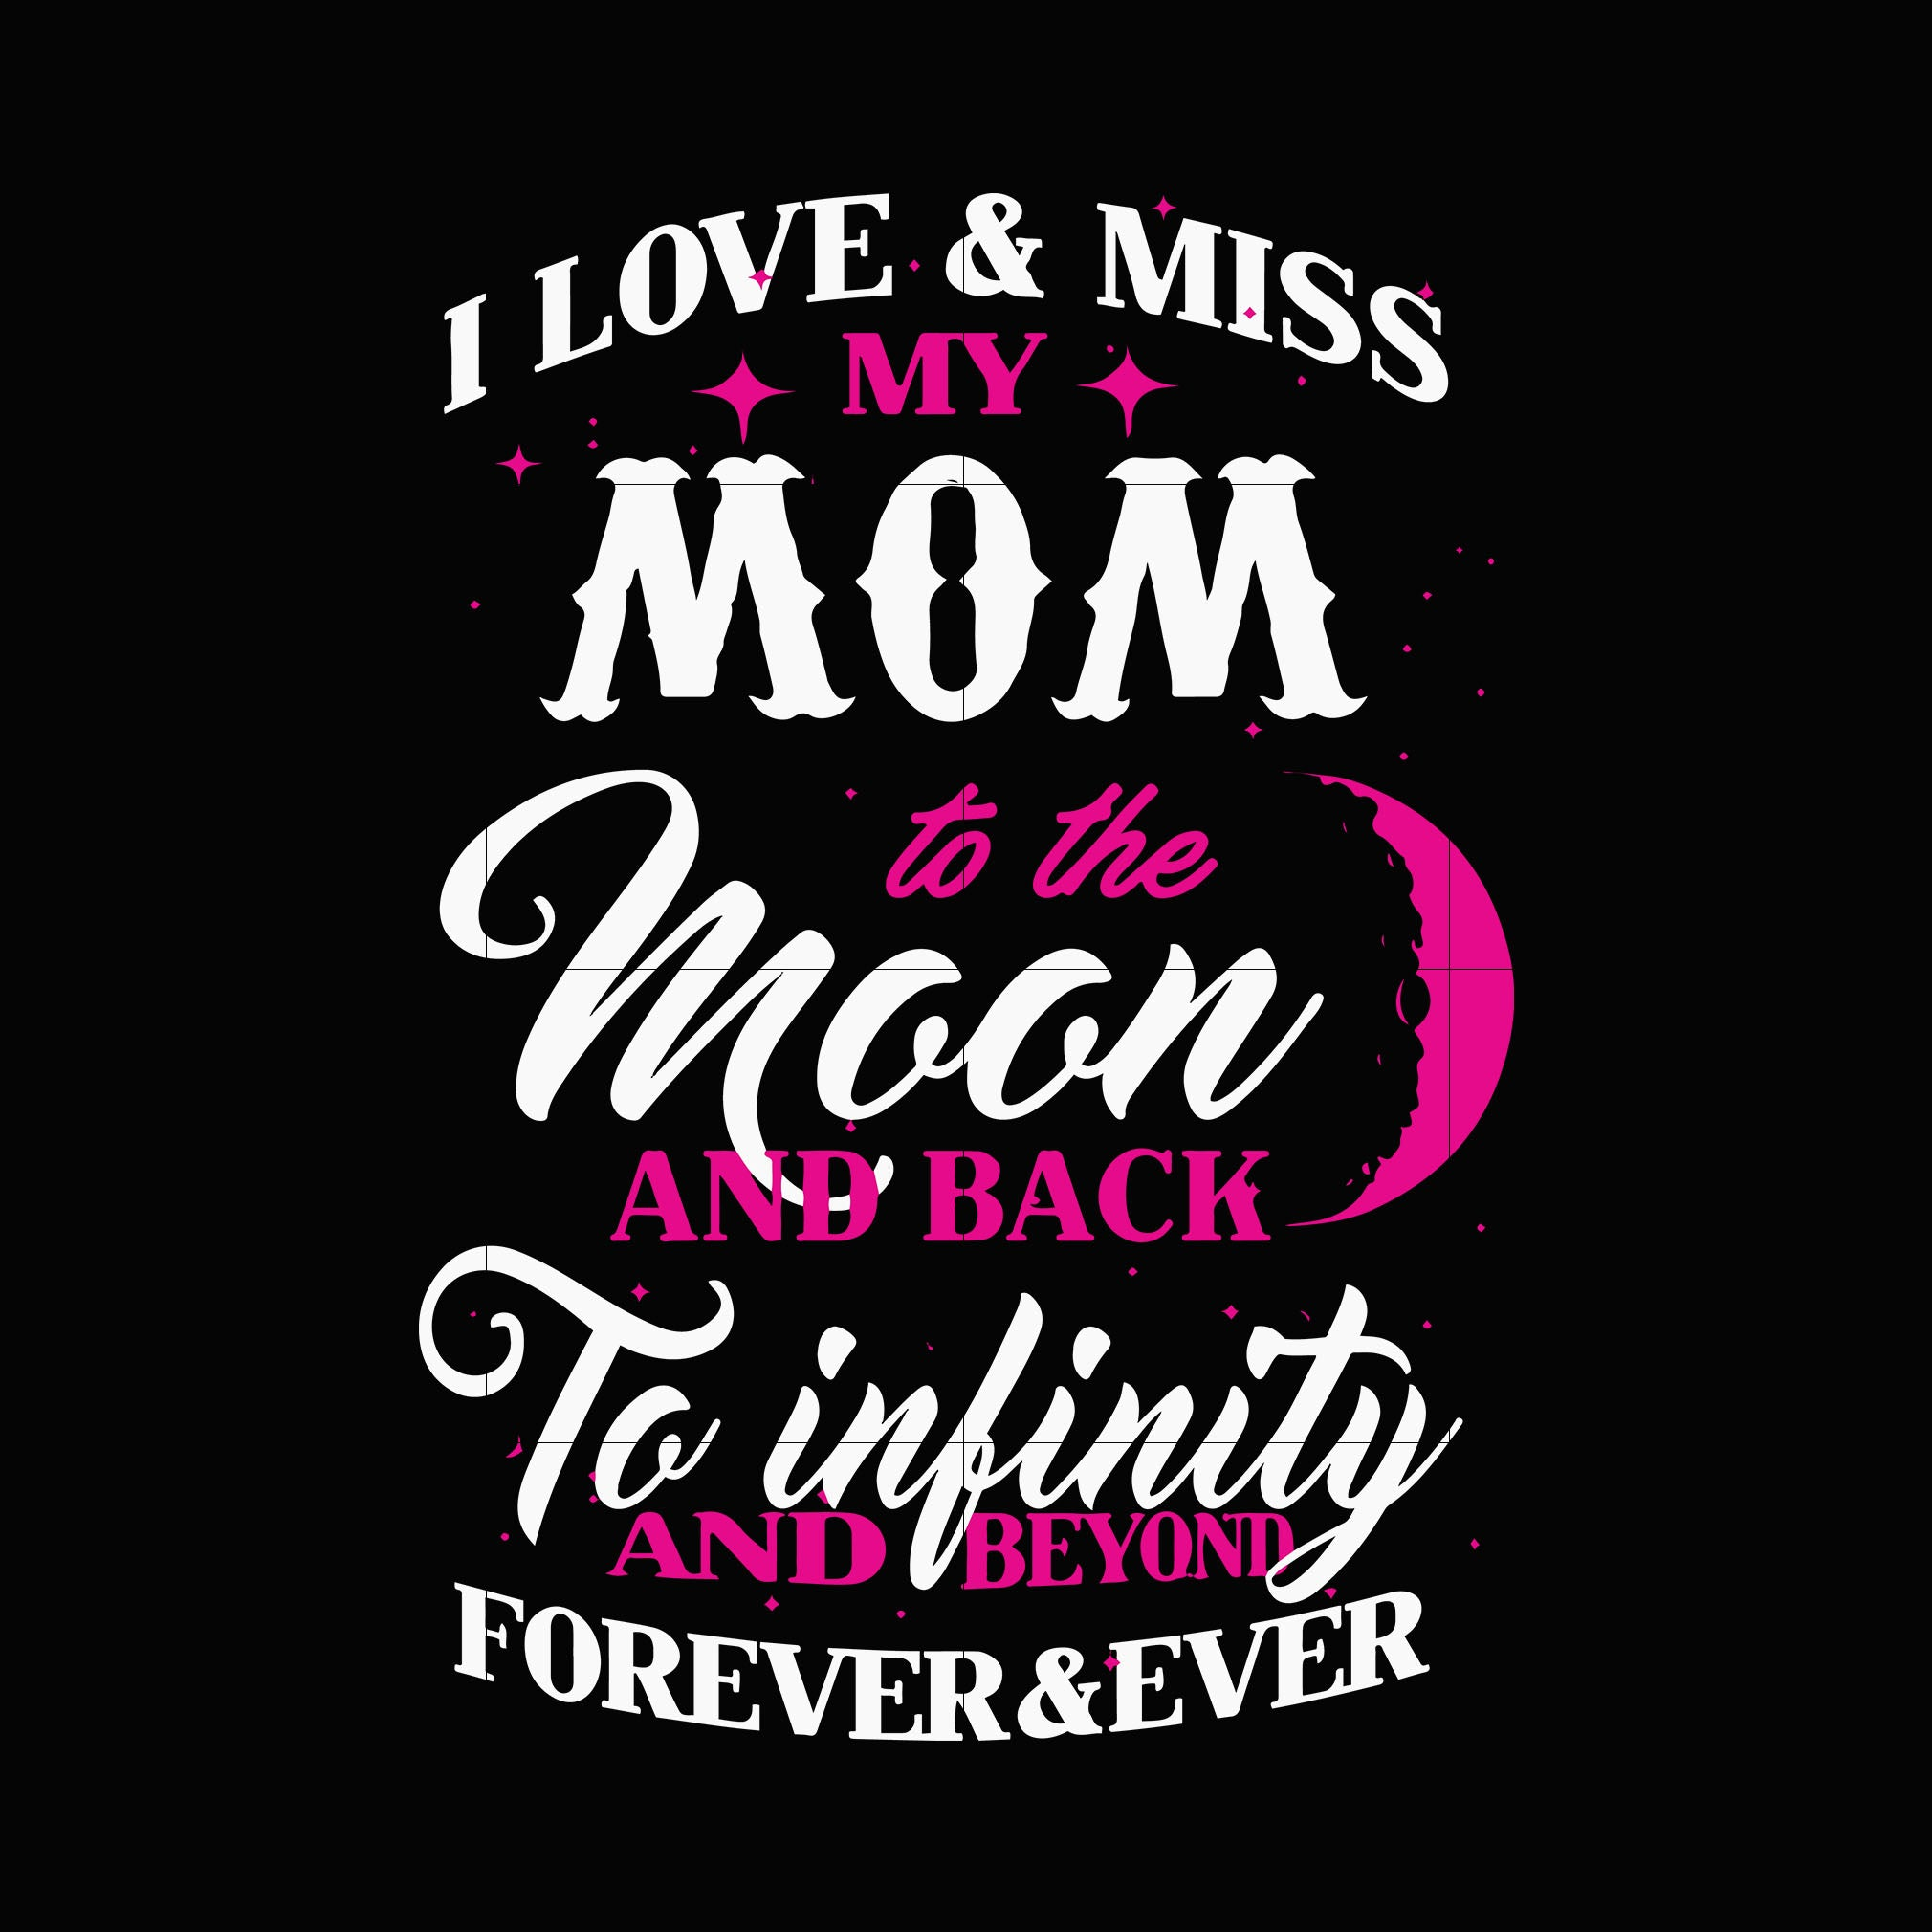 I love and miss my mom to the moon and back to infinity and beyond forever ever svg ,dxf,eps,png digital file